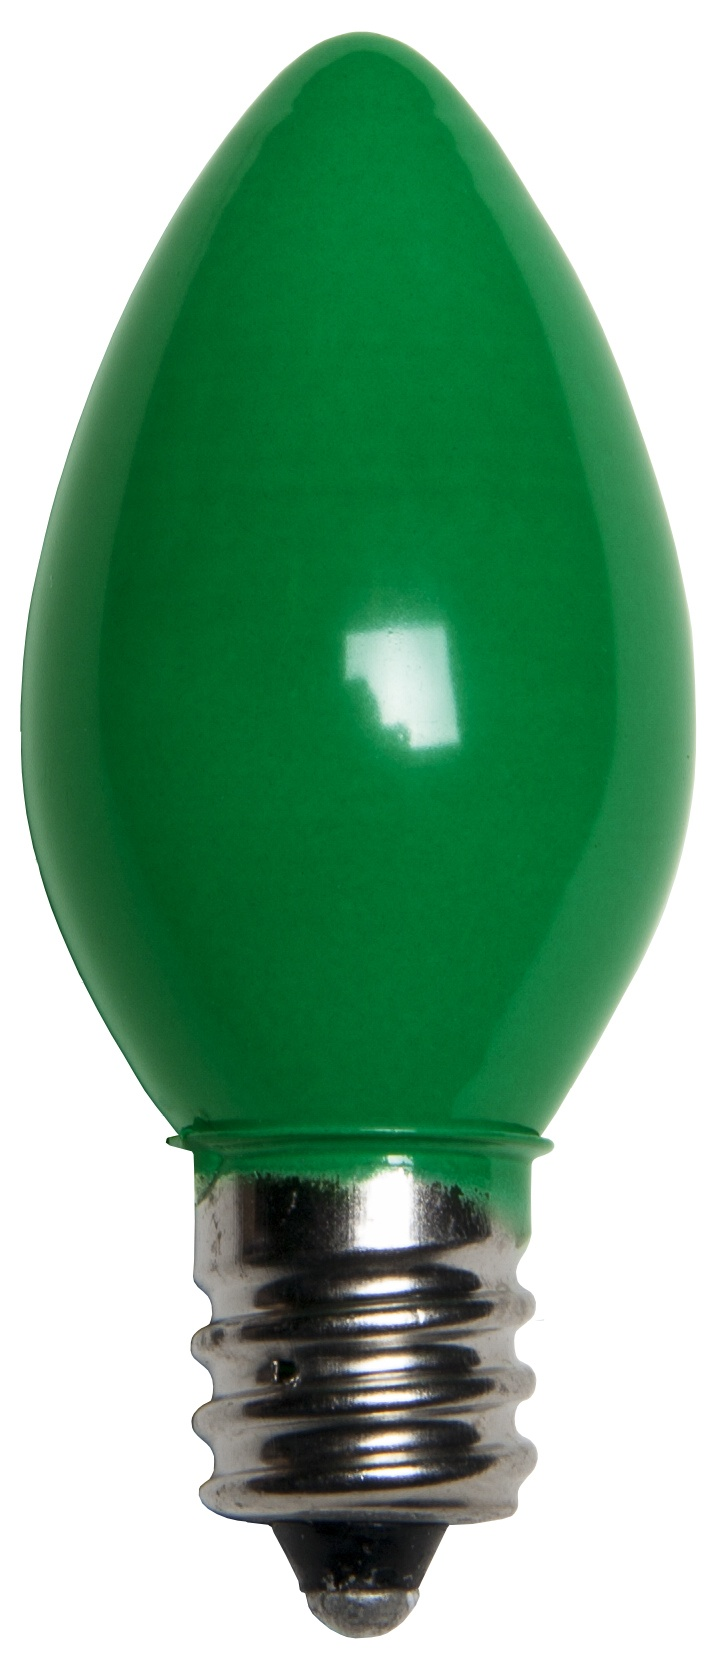 C7 Christmas Light Bulb C7 Green Christmas Light Bulbs